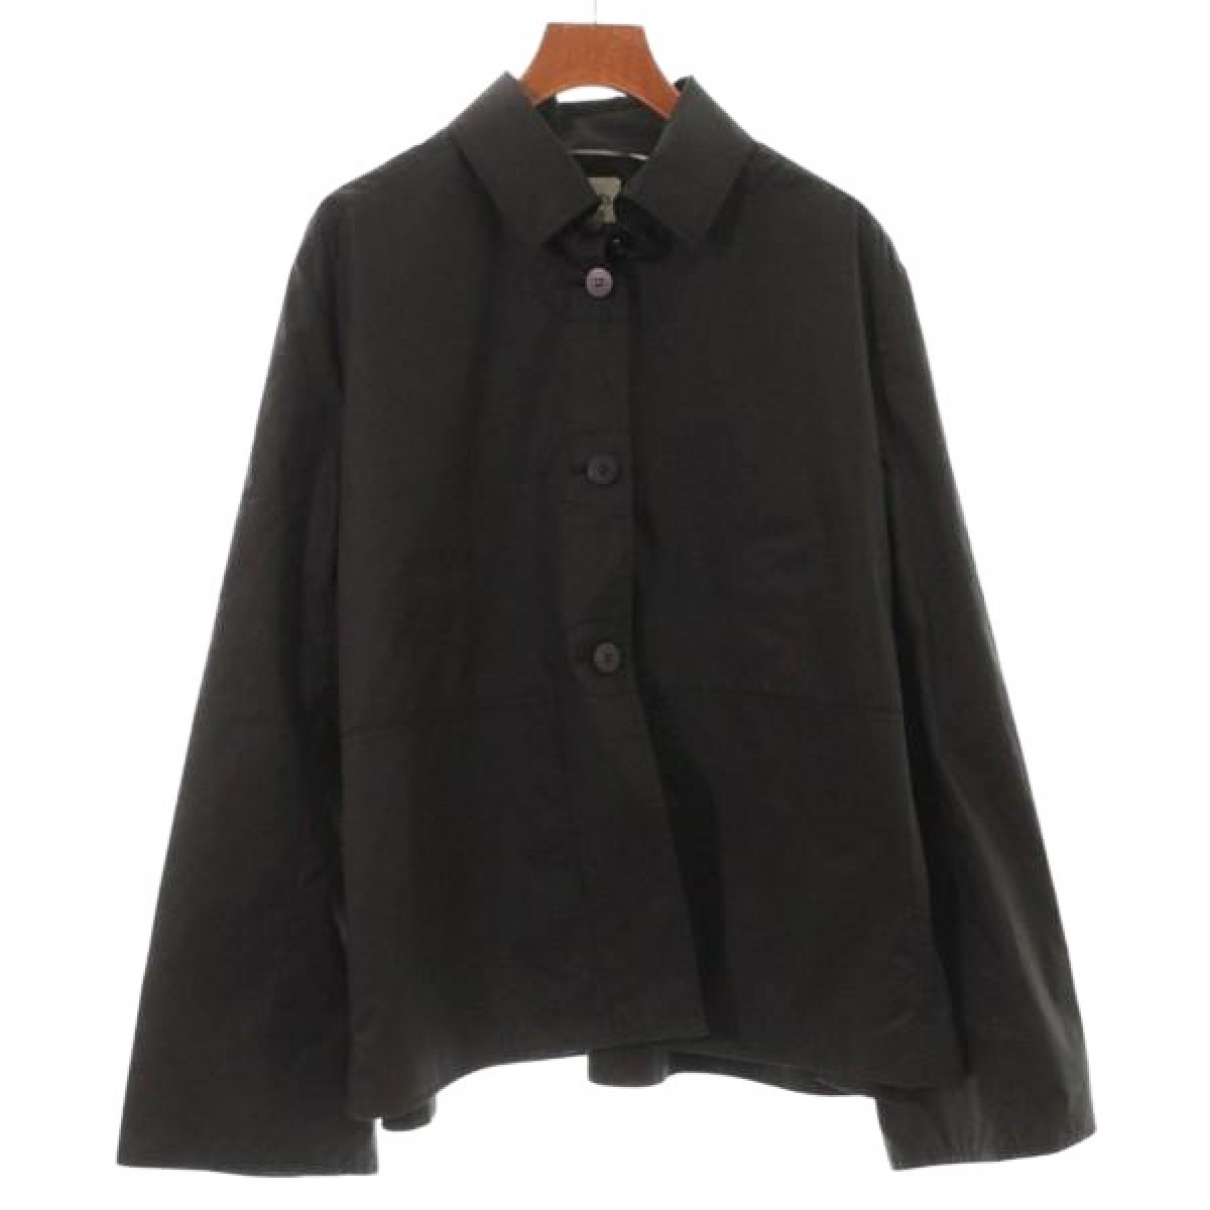 Hermès \N Black Cotton jacket for Women 42 FR